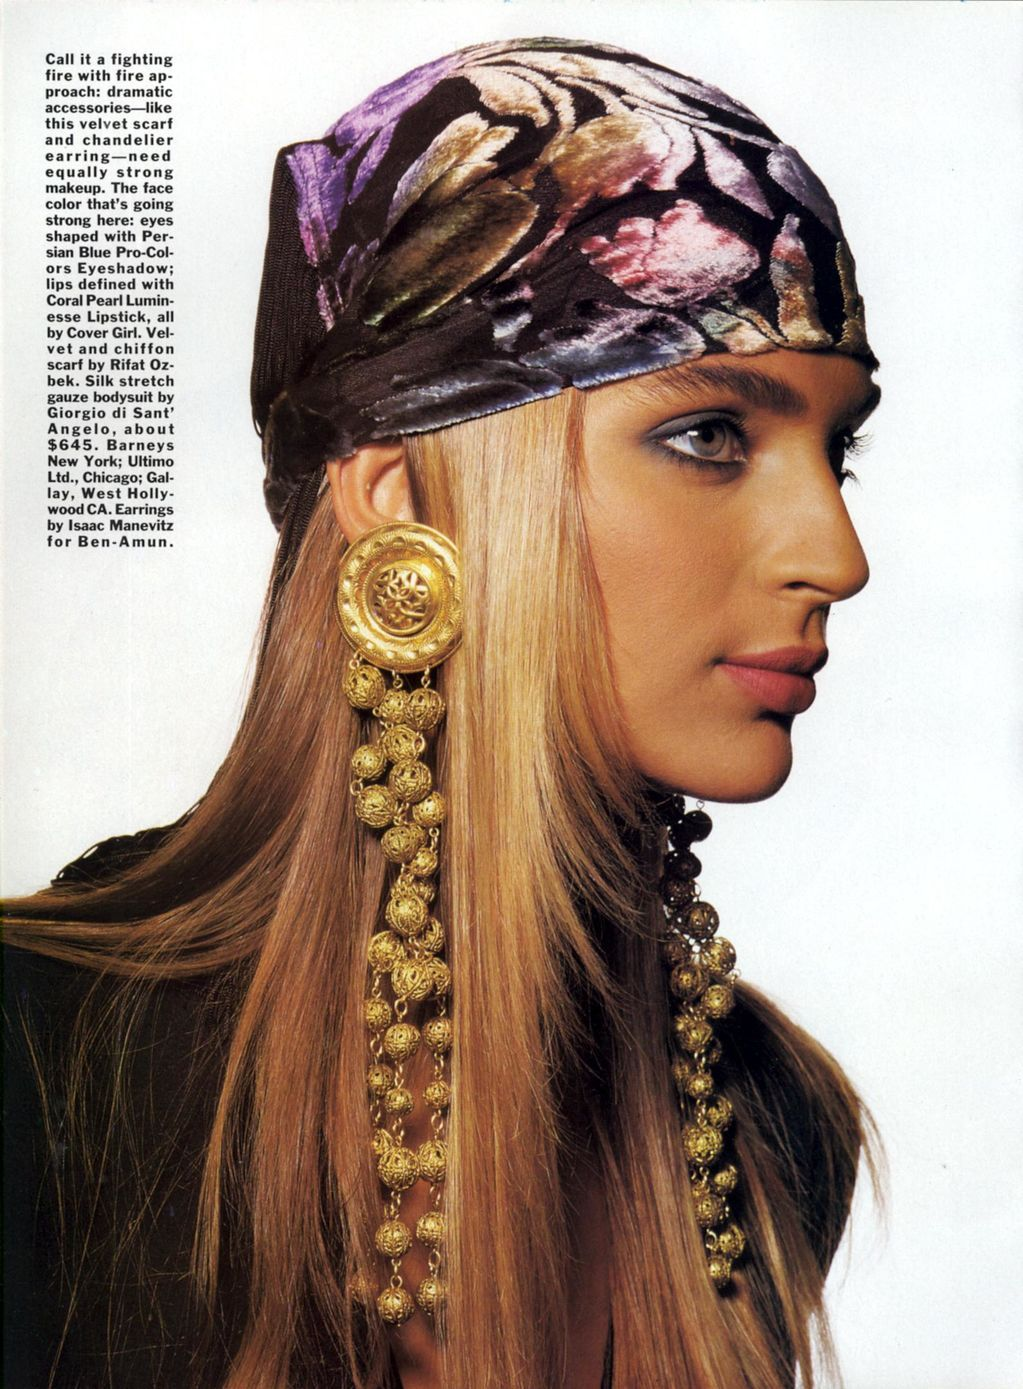 80s-90s-supermodels:  Vogue US, October 1989Photographer : Irving PennModel : Gabrielle Reece Happy birthday, Gabrielle !   So beautiful